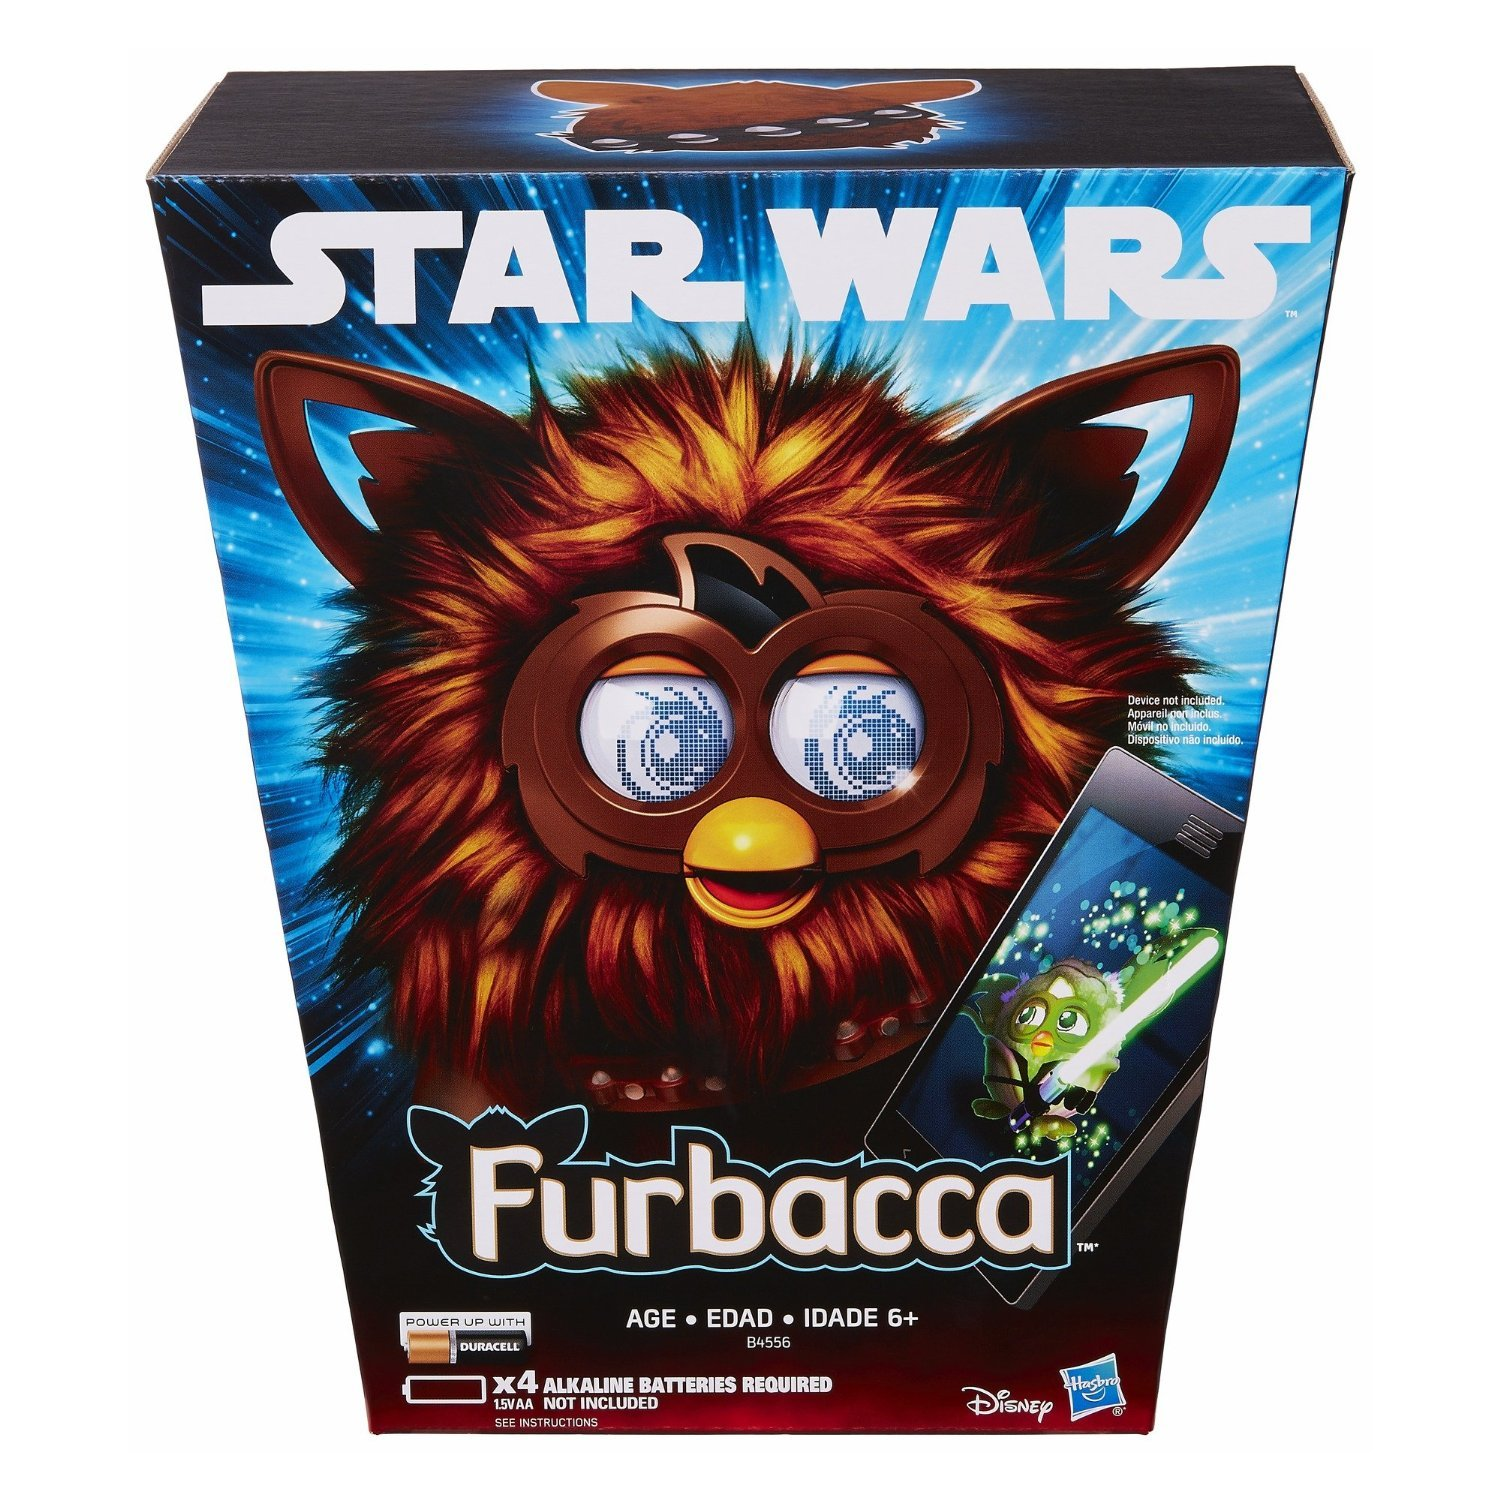 Image 2 of Star Wars Furby Furbacca Interactive Creature, Hasbro, 6+